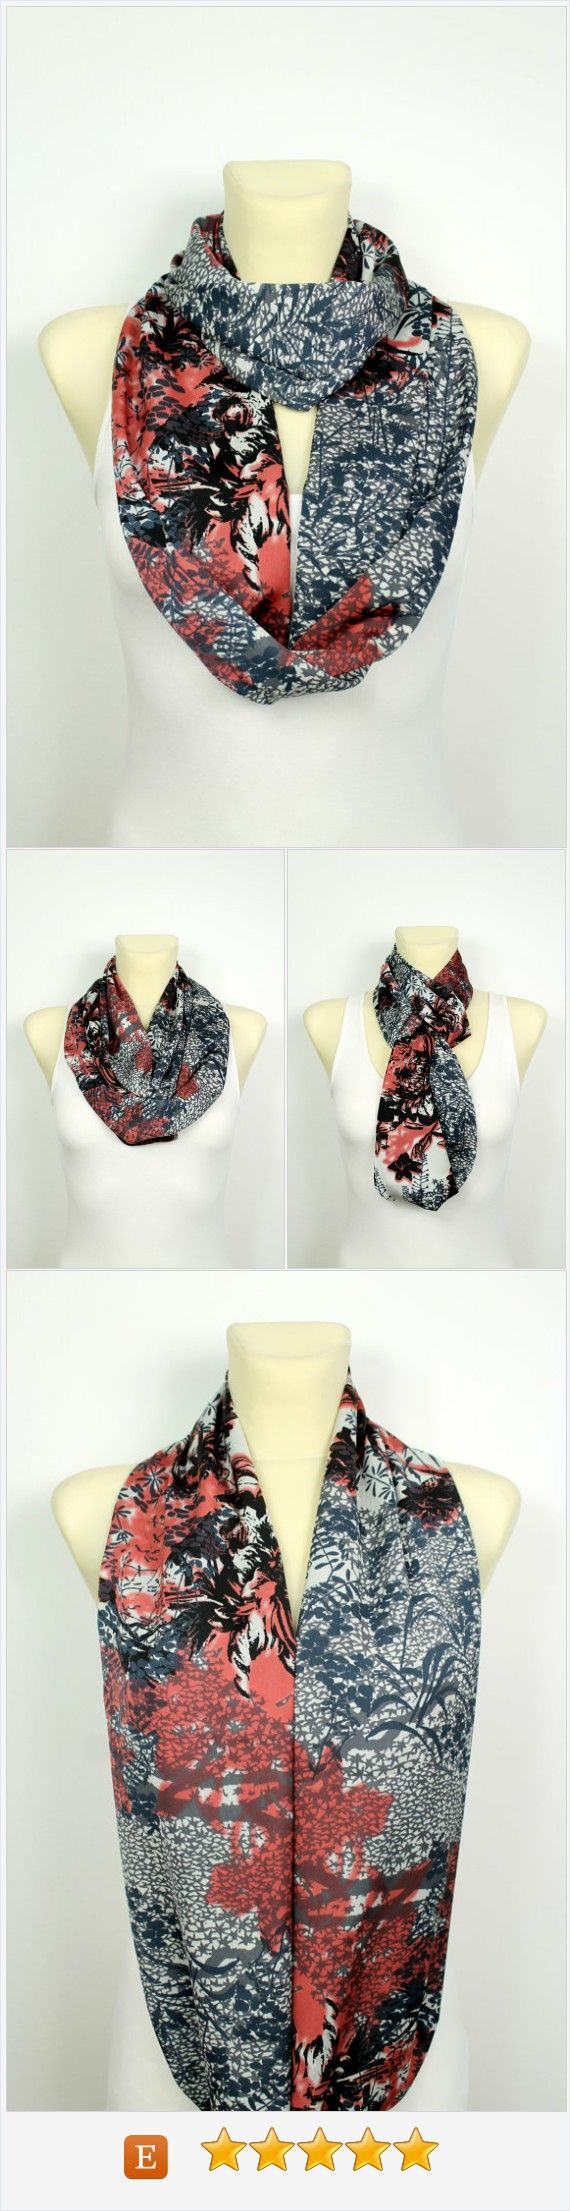 Great Christmas gift idea for those who like Japanese theme :) Shibori scarves are unique and very pretty, check them out in Locotrends Etsy shop www.cocotrends.etsy.com  Infinity Shibori Scarf - Printed Circle Scarf - Fabric Shibori Scarf - Satin Silk Scarf - Fashion Shibori Scarf - Unique Boho Scarf